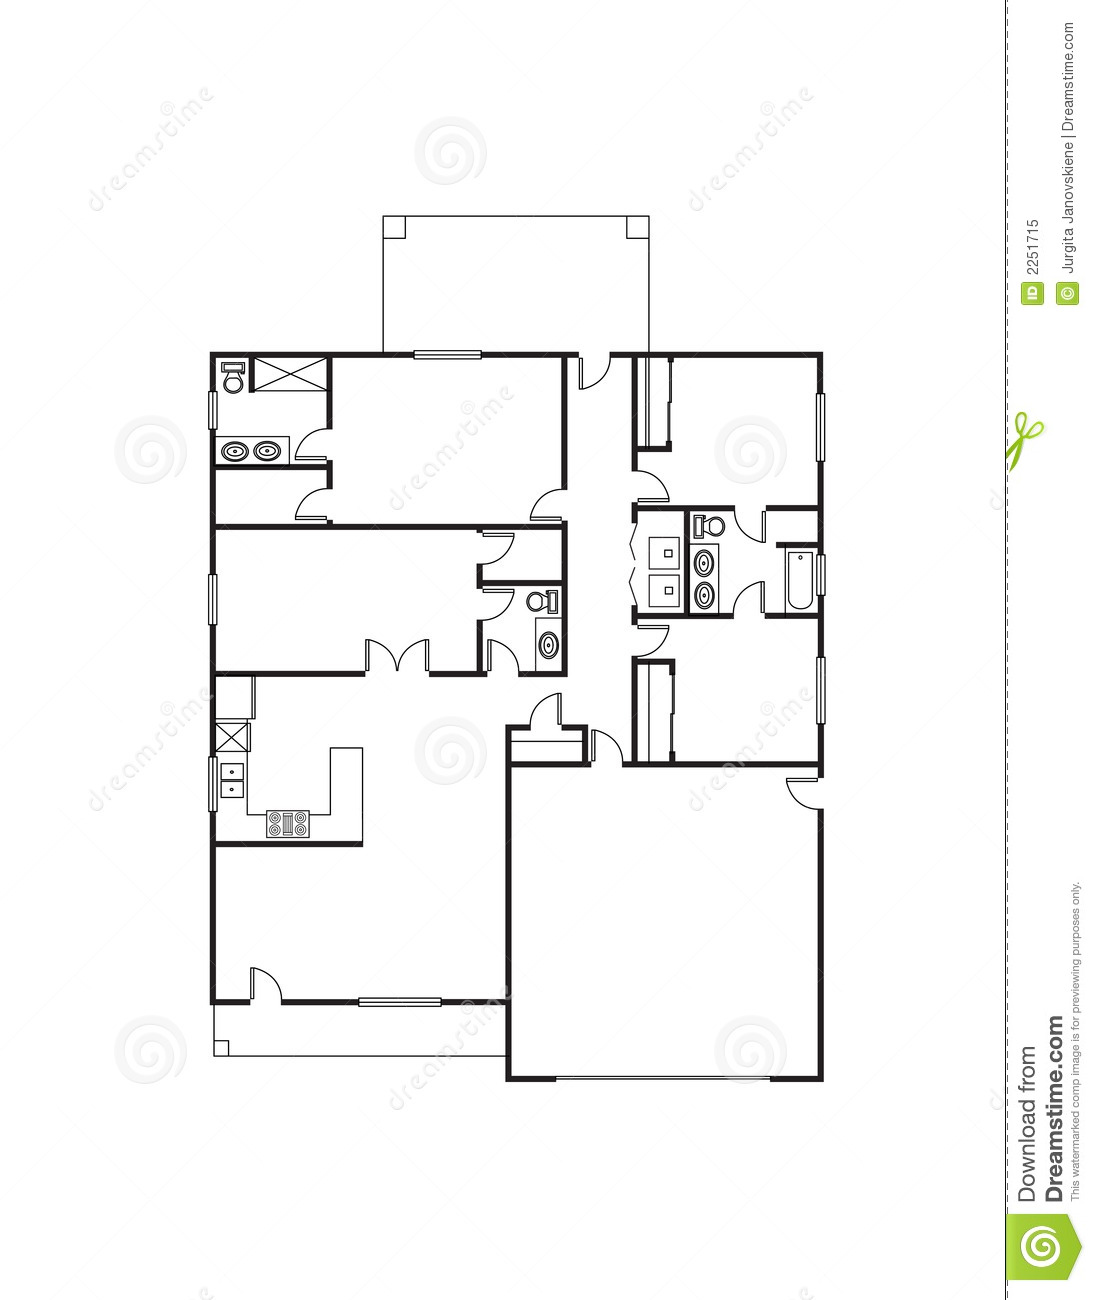 Single family house plans free single floor house plans for Family home floor plans